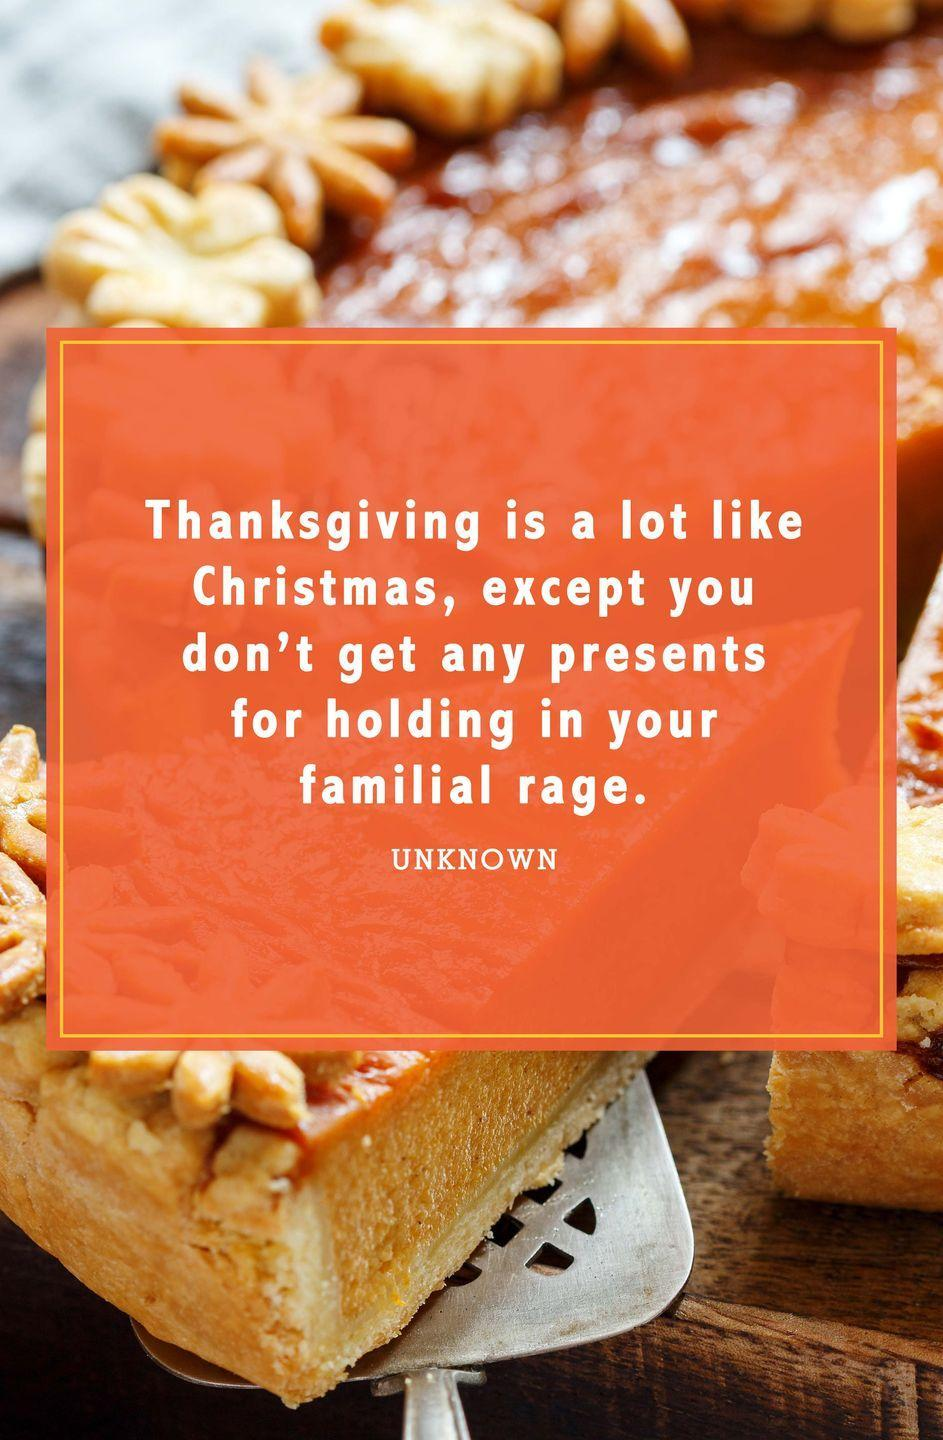 """<p>""""Thanksgiving is a lot like Christmas, except you don't get any presents for holding in your familial rage.""""</p>"""